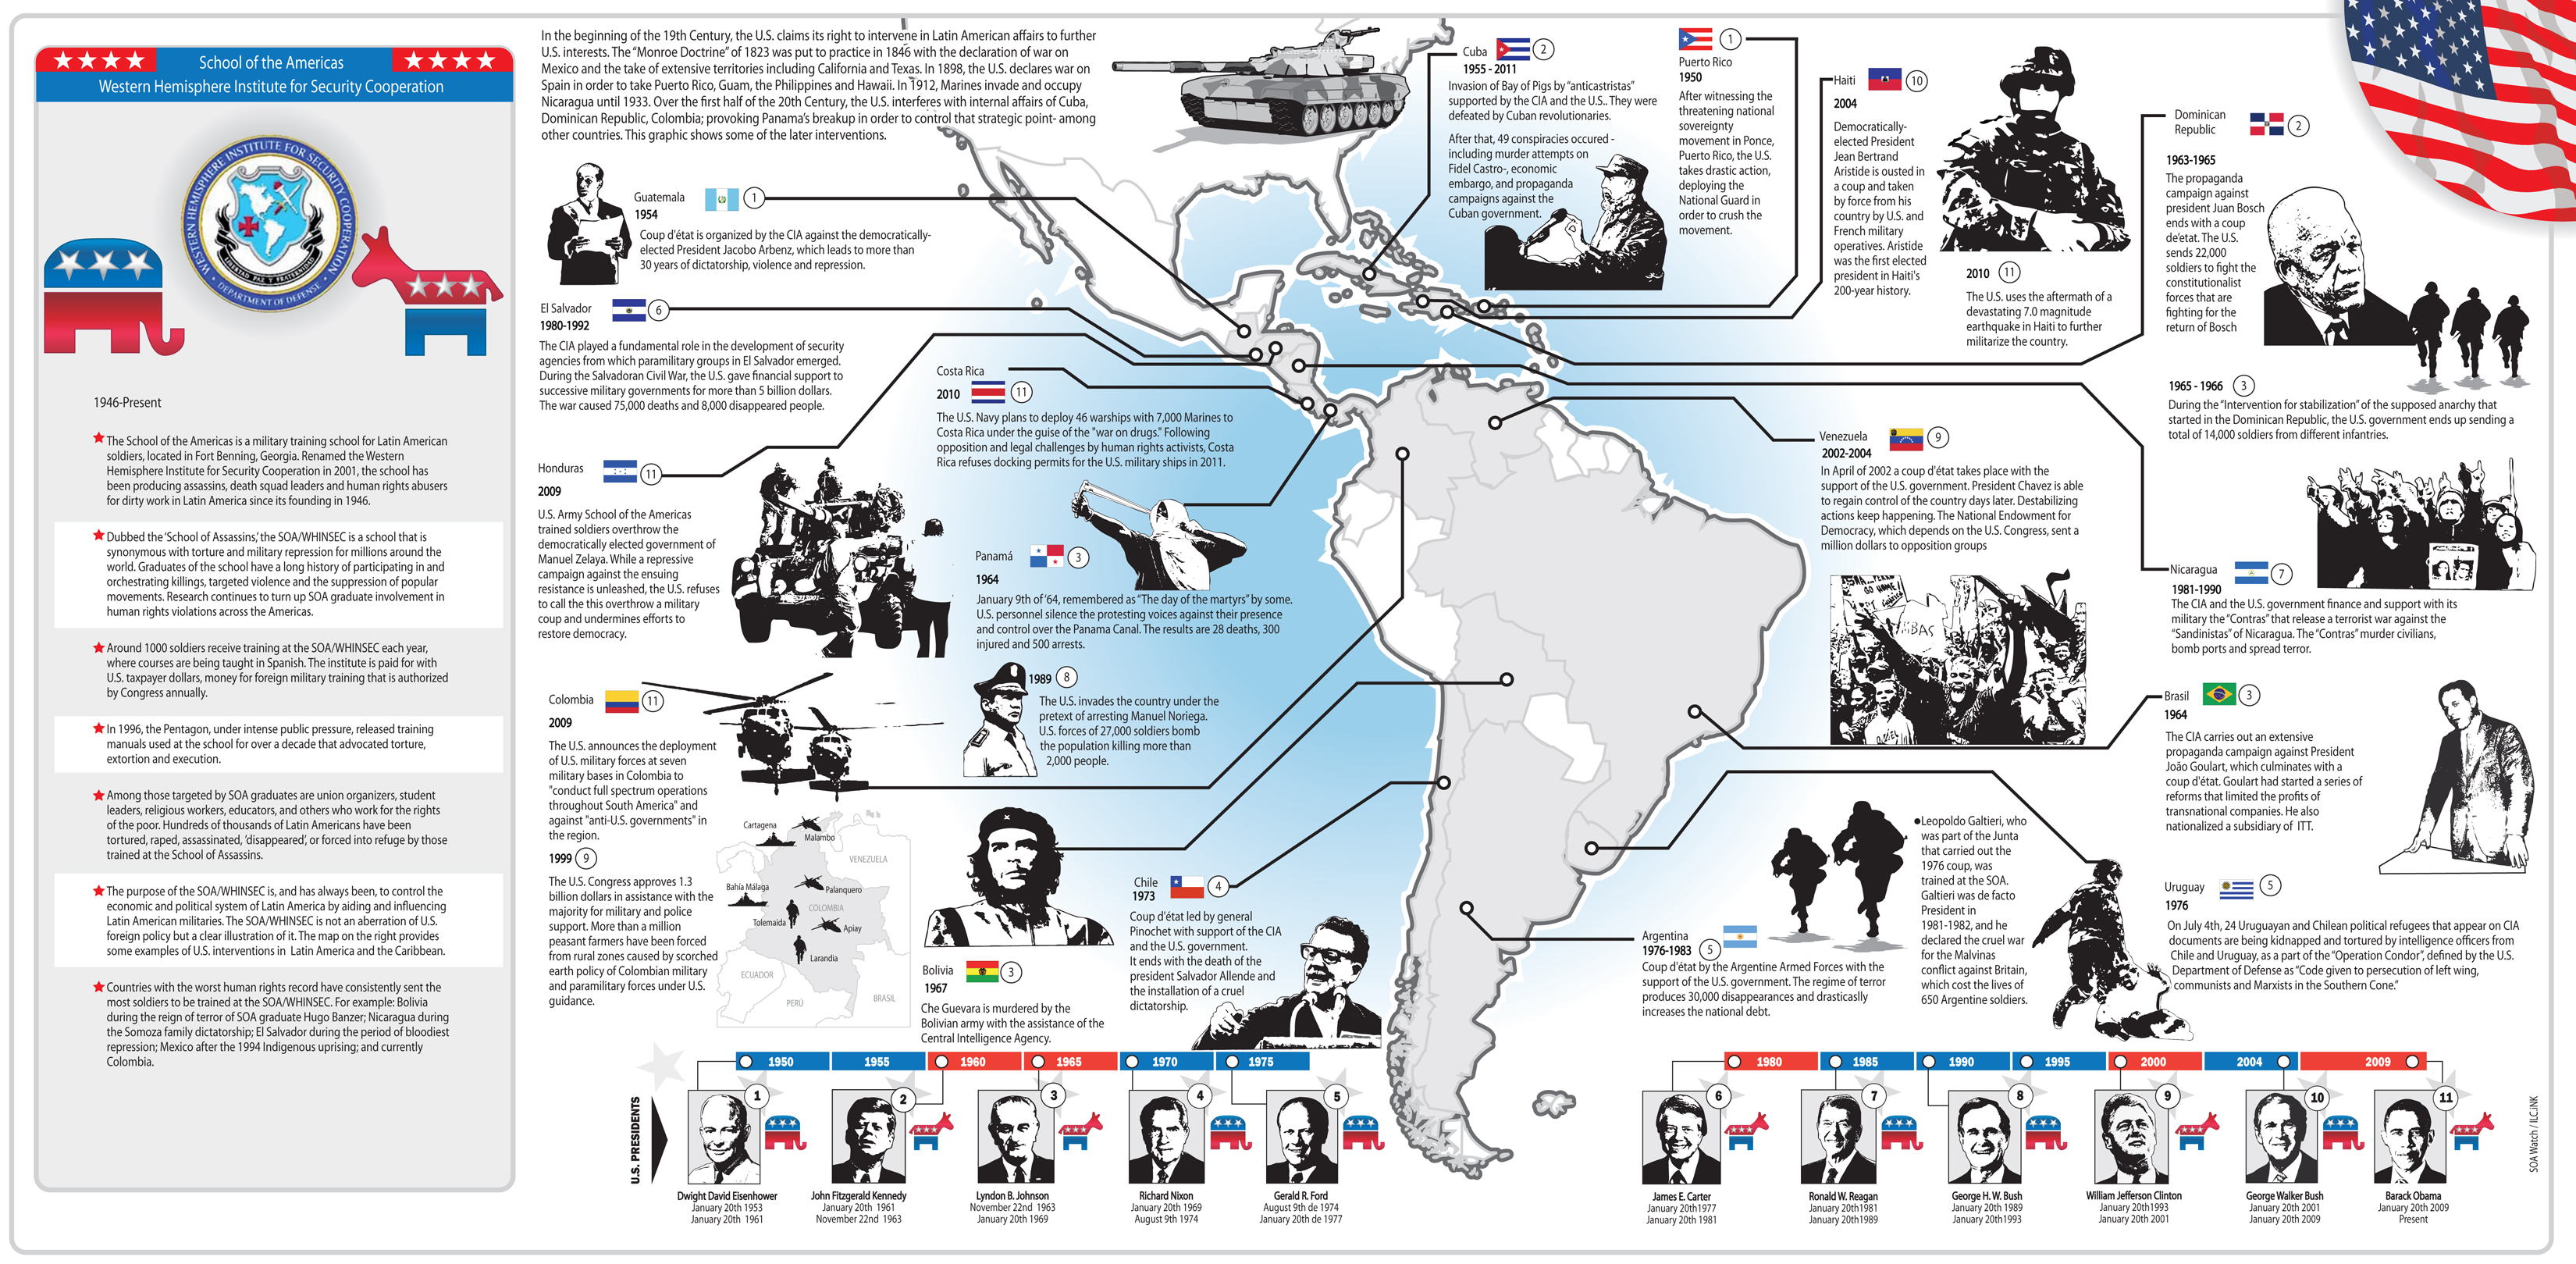 US INTERVENTION IN CUBA